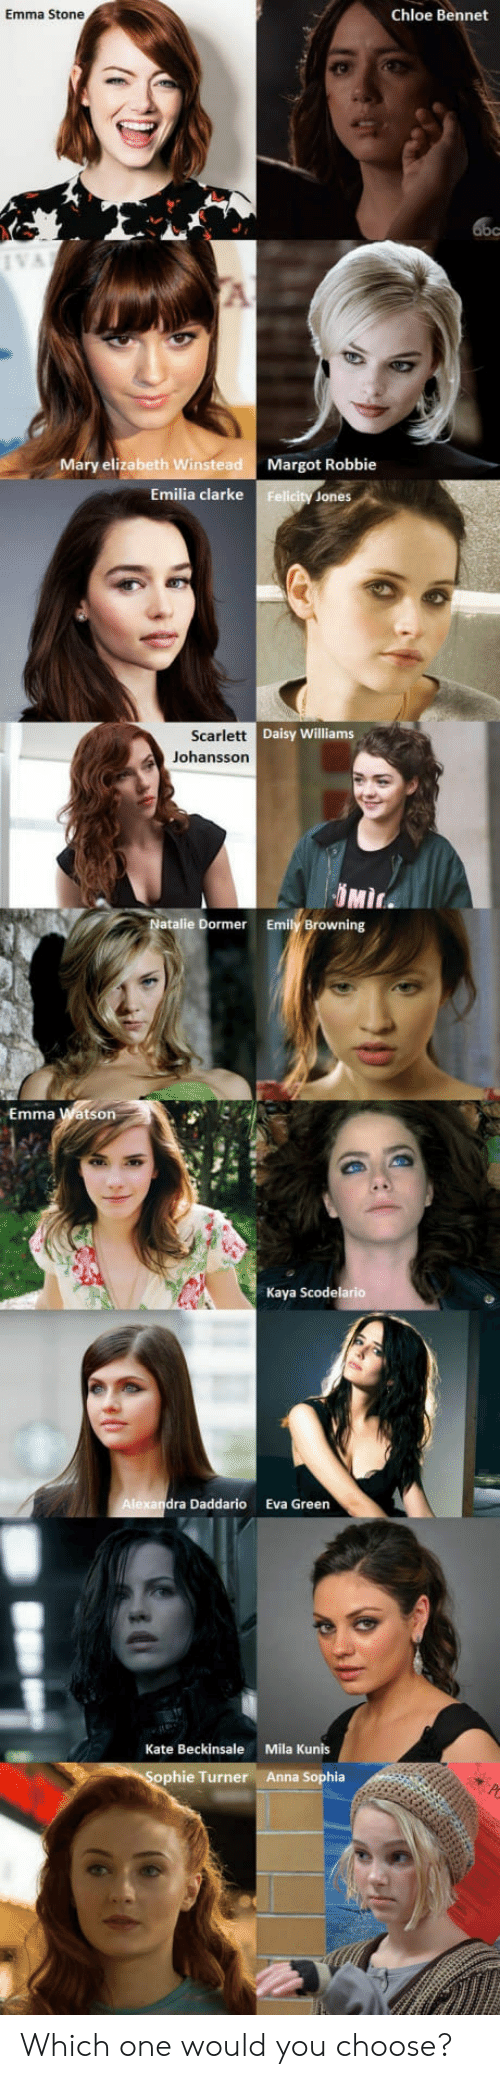 Emma Stone: Emma Stone  Chloe Bennet  Mary elizabeth Winstead  Margot Robbie  Emilia clarke Felicity Jones  Daisy Williams  Scarlett  Johansson  DMİ  atalie Dormer  Emily Browning  Emma Watson  Kaya Scodelario  dra  Daddario  Eva Green  Kate Beckinsale  Mila Kunis  phie Turner  Anna Sophia Which one would you choose?